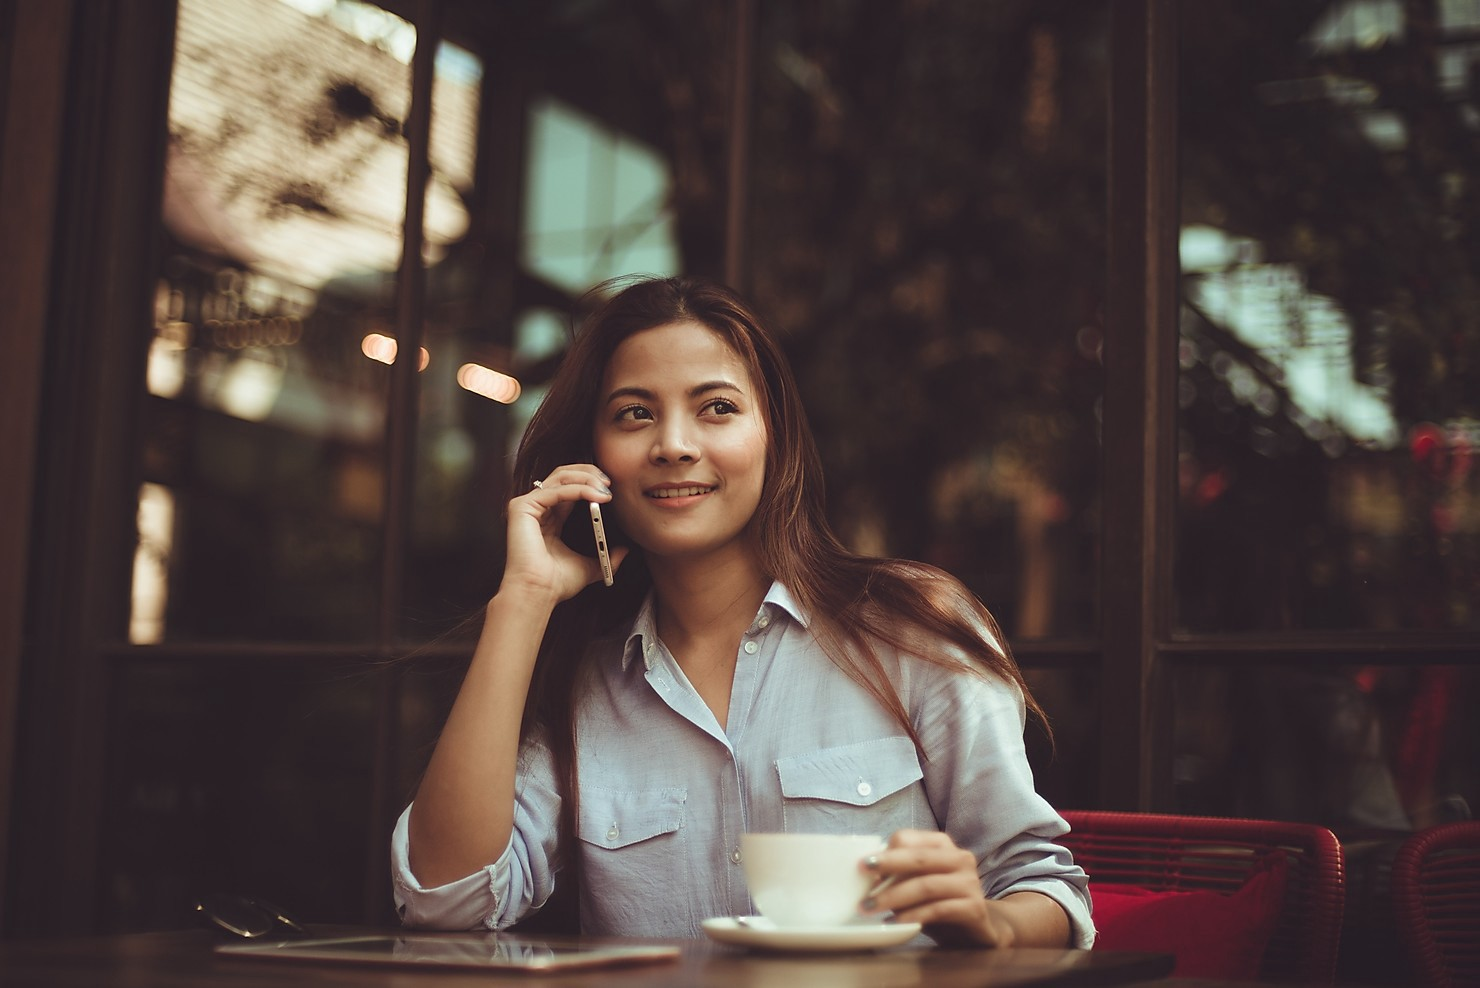 Young woman at a cafe speaking on the phone